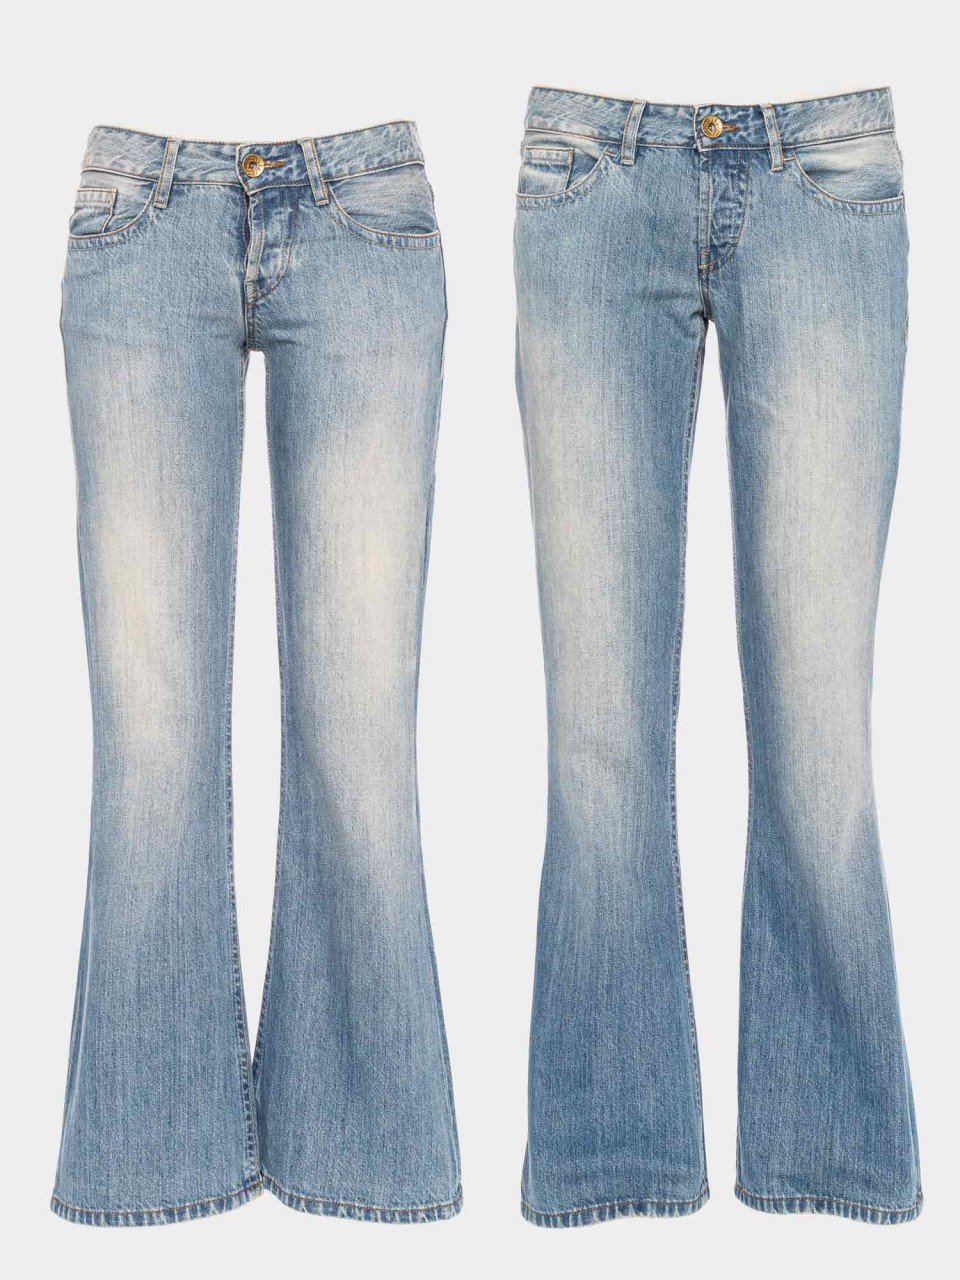 Jeans Fred GOTS RR2776 HBL USD